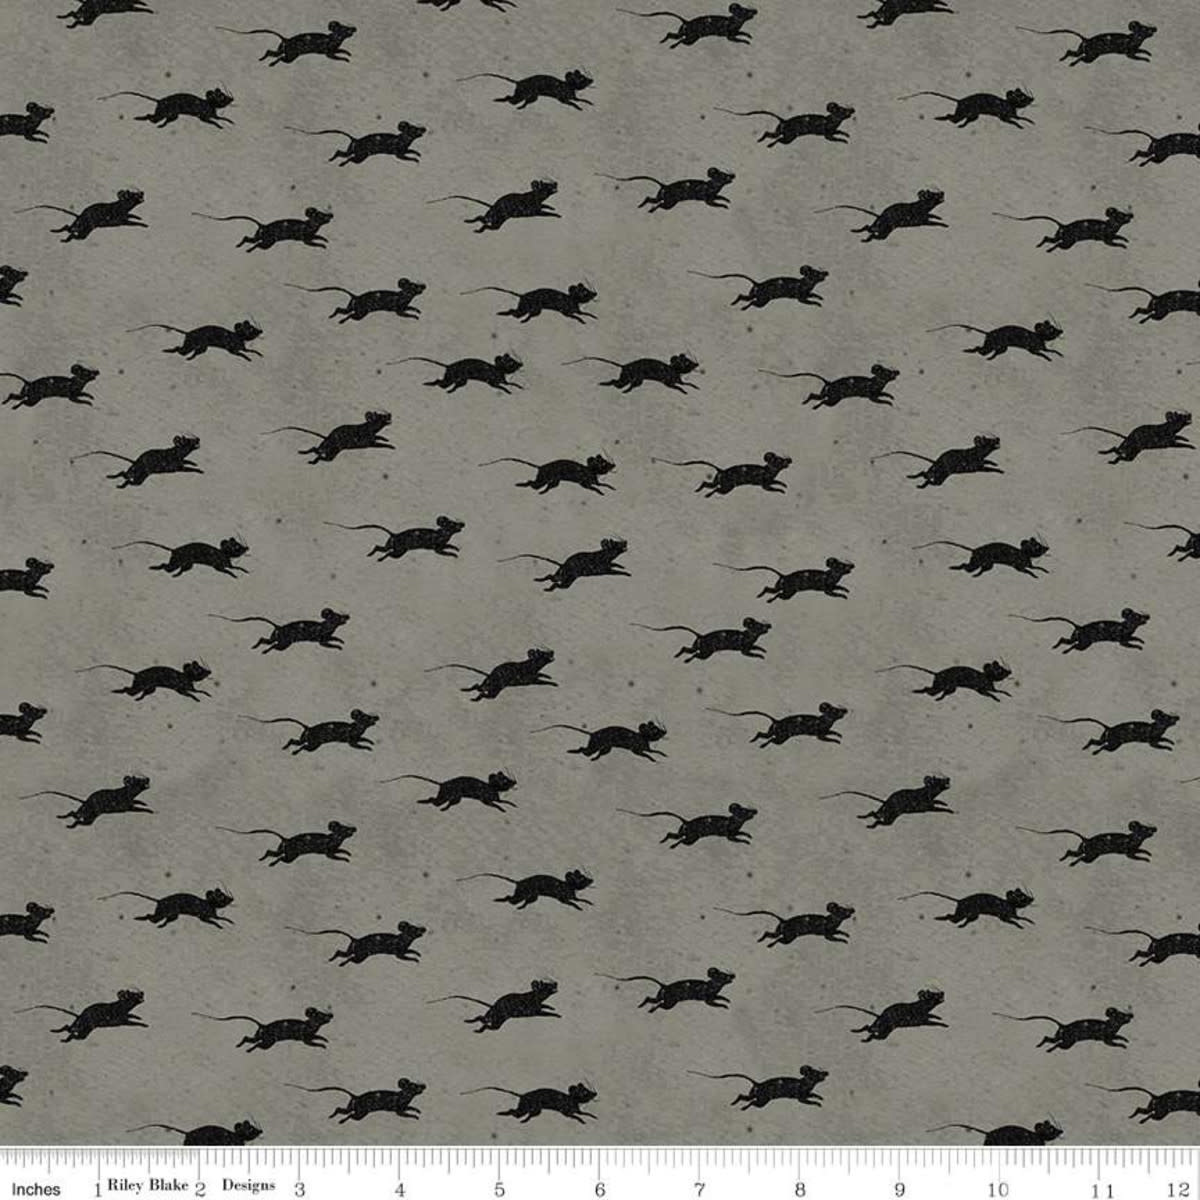 RILEY BLAKE DESIGNS Goose Tales, Blind Mice Gray, per cm or $20/m Halloween